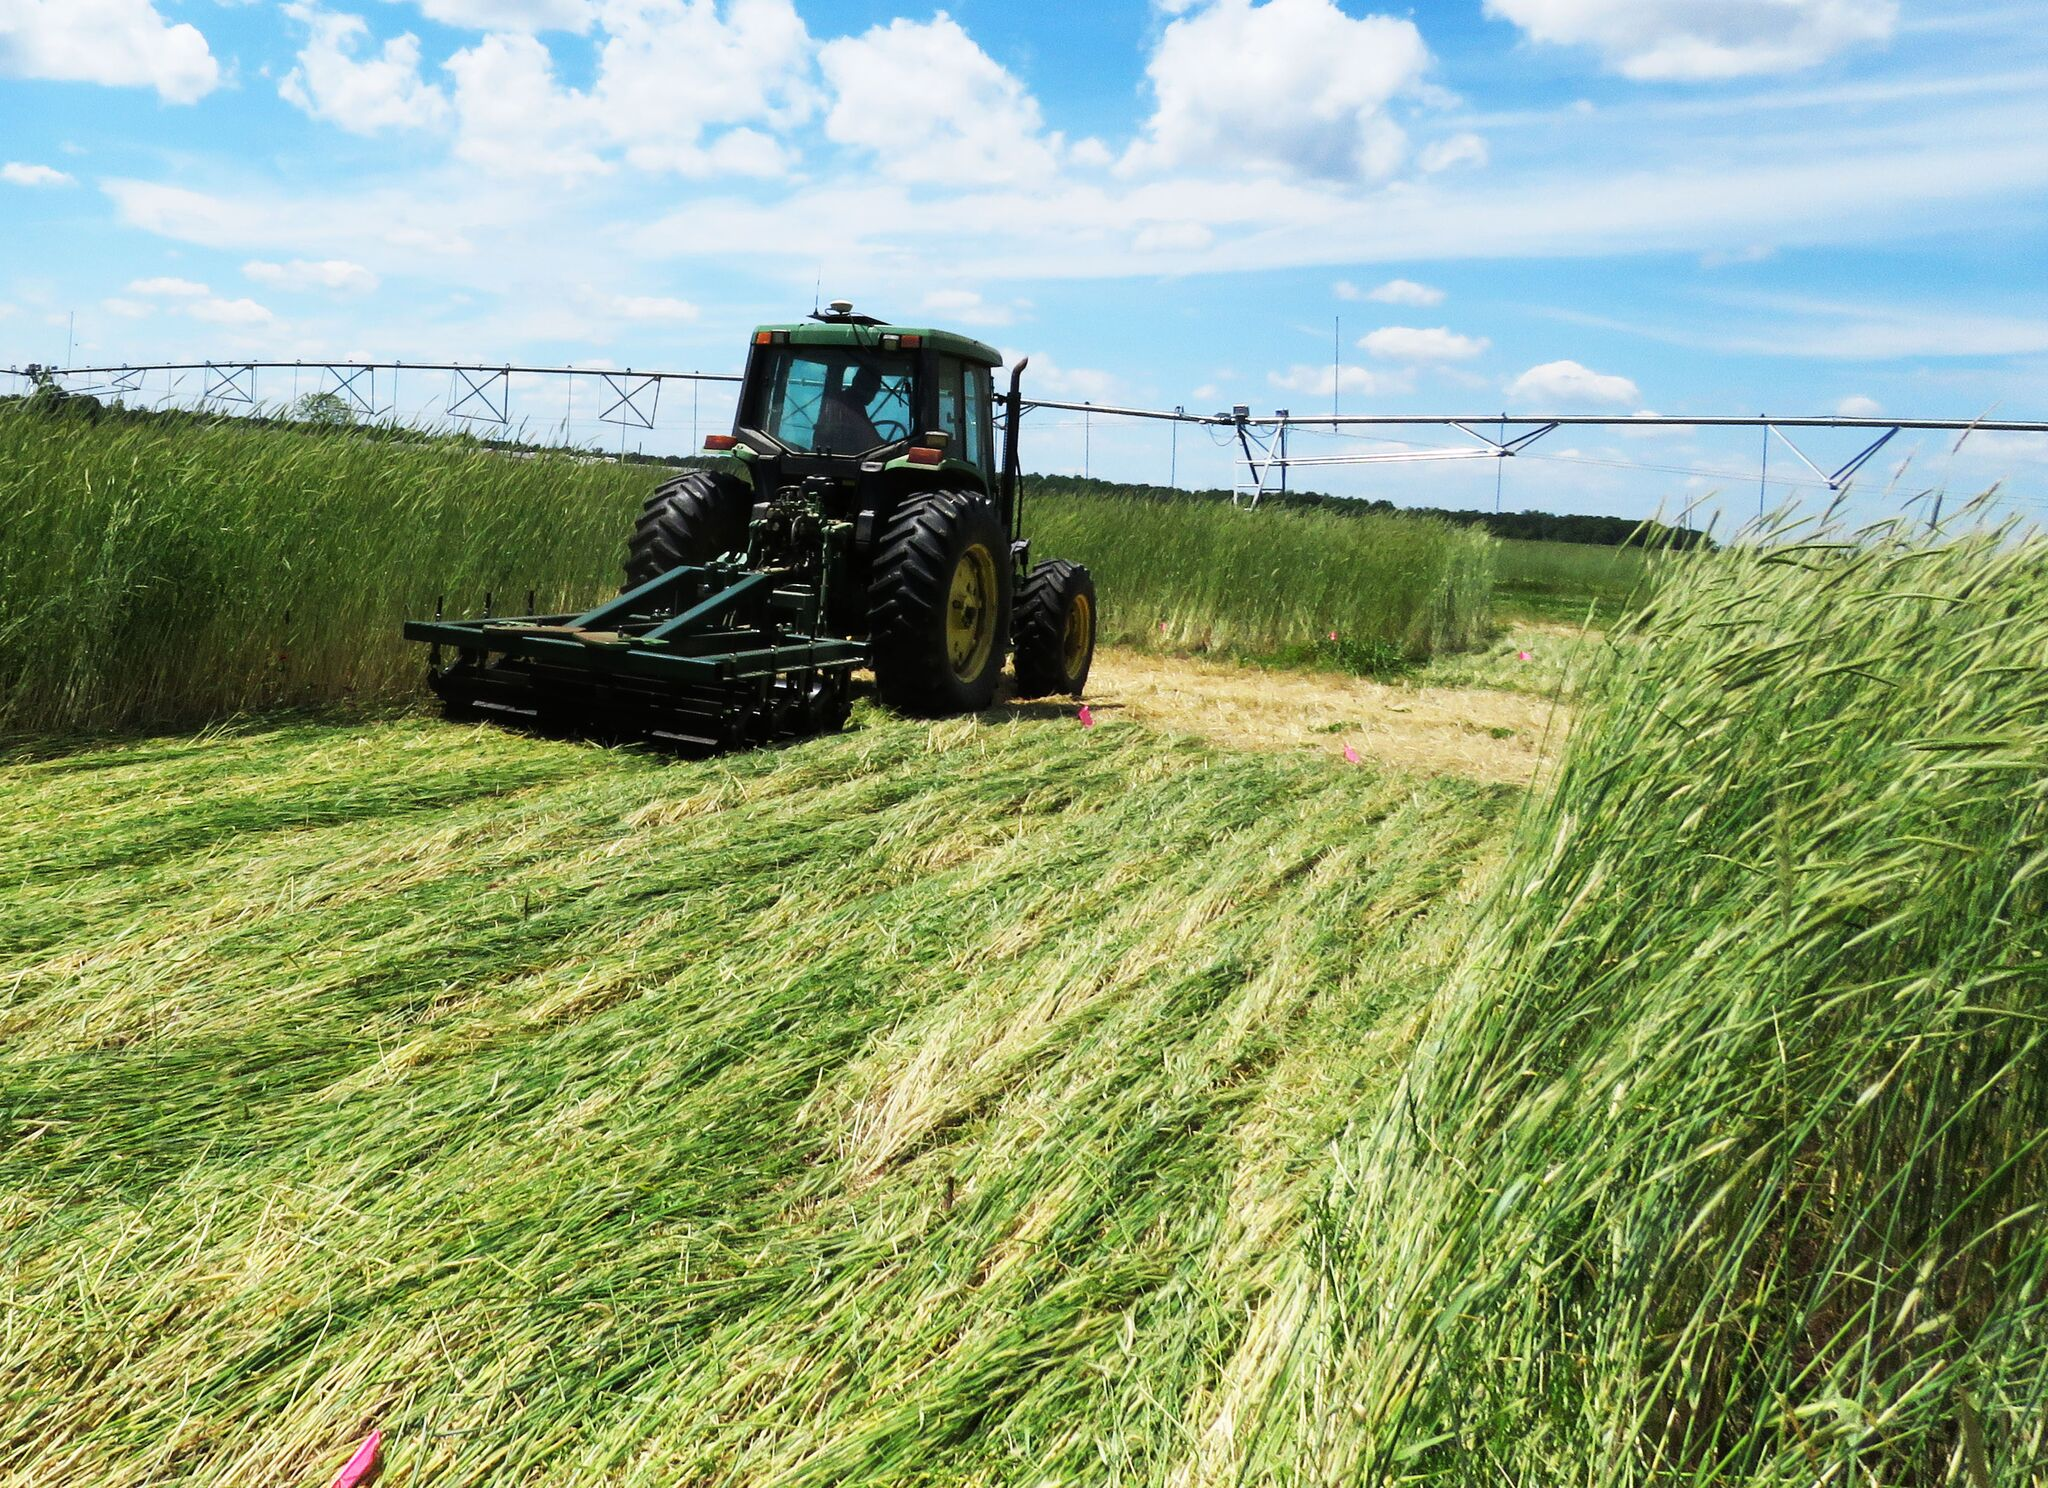 A tractor pulls a roller/crimper through a field. This conservation system practice terminates the cover crop by crimping it down. Farmers will plant into the heavy residue.